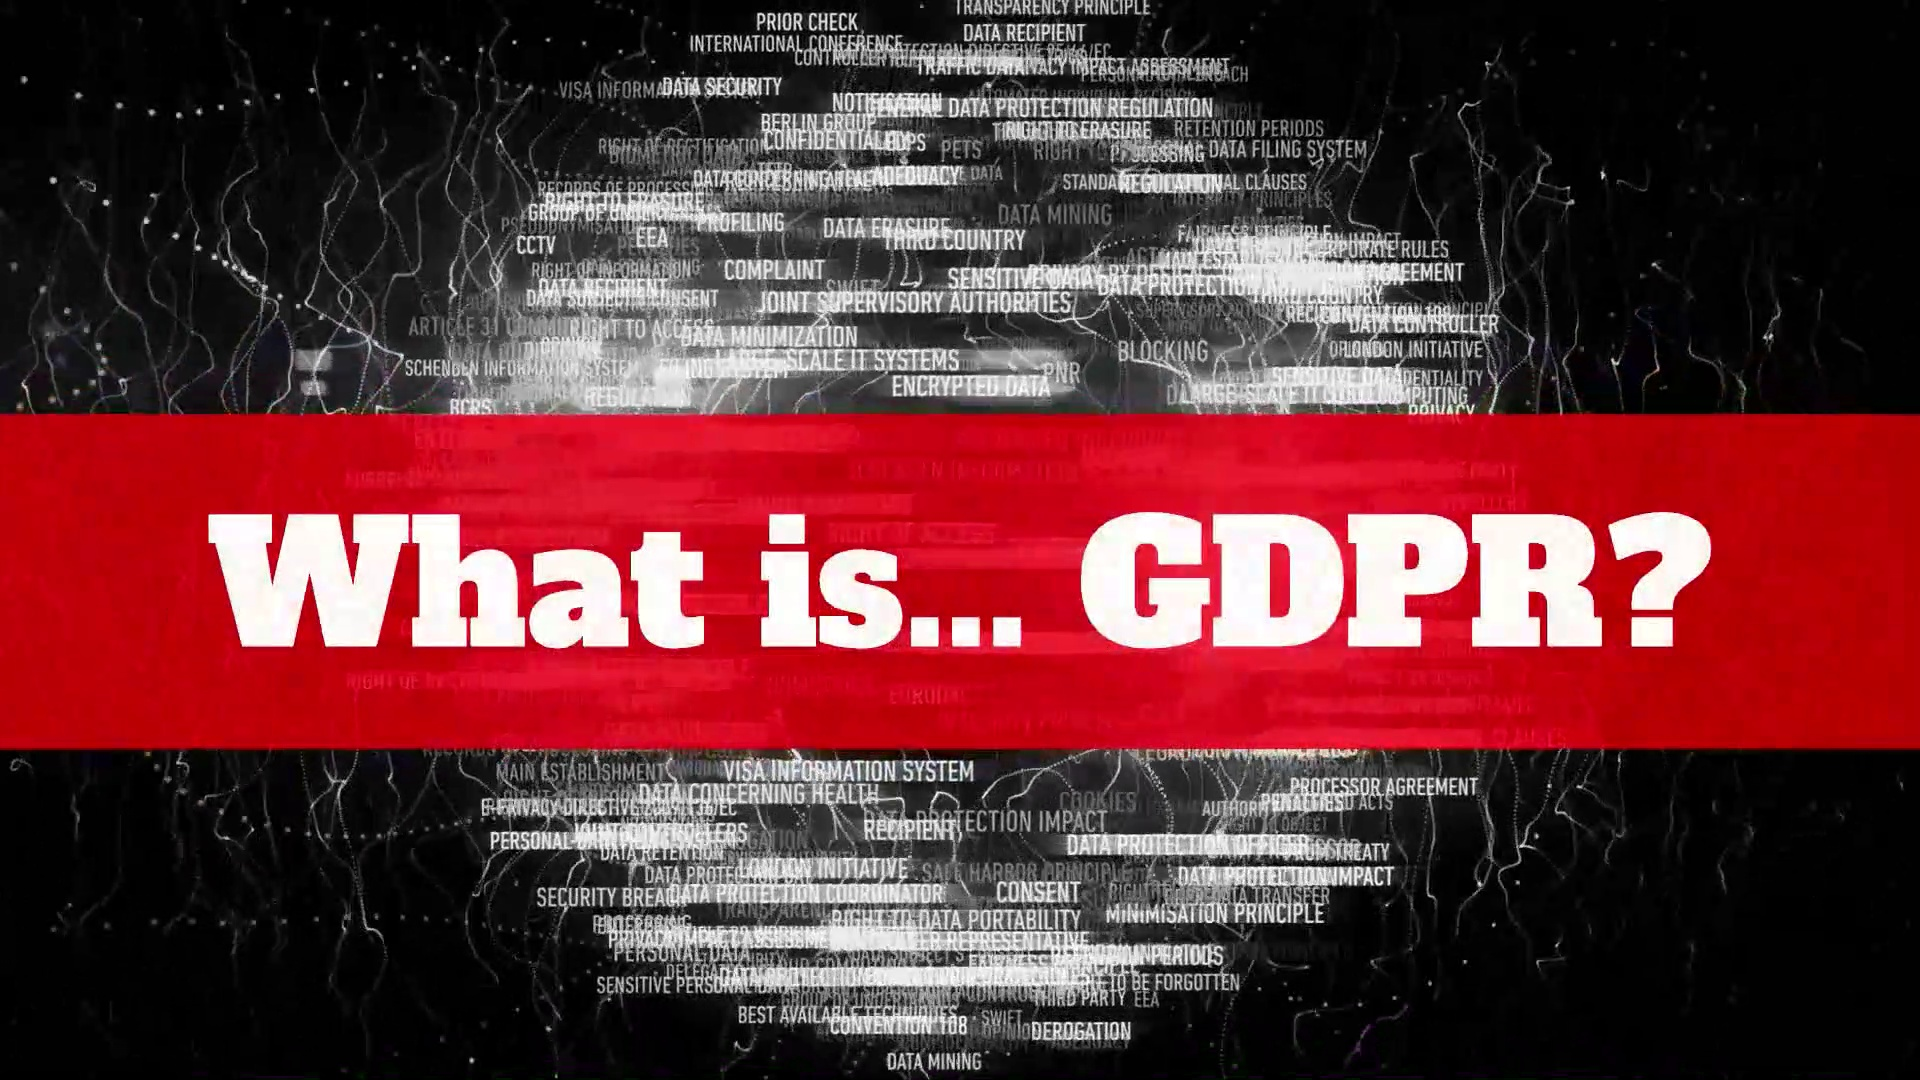 GDPR – What is GDPR?